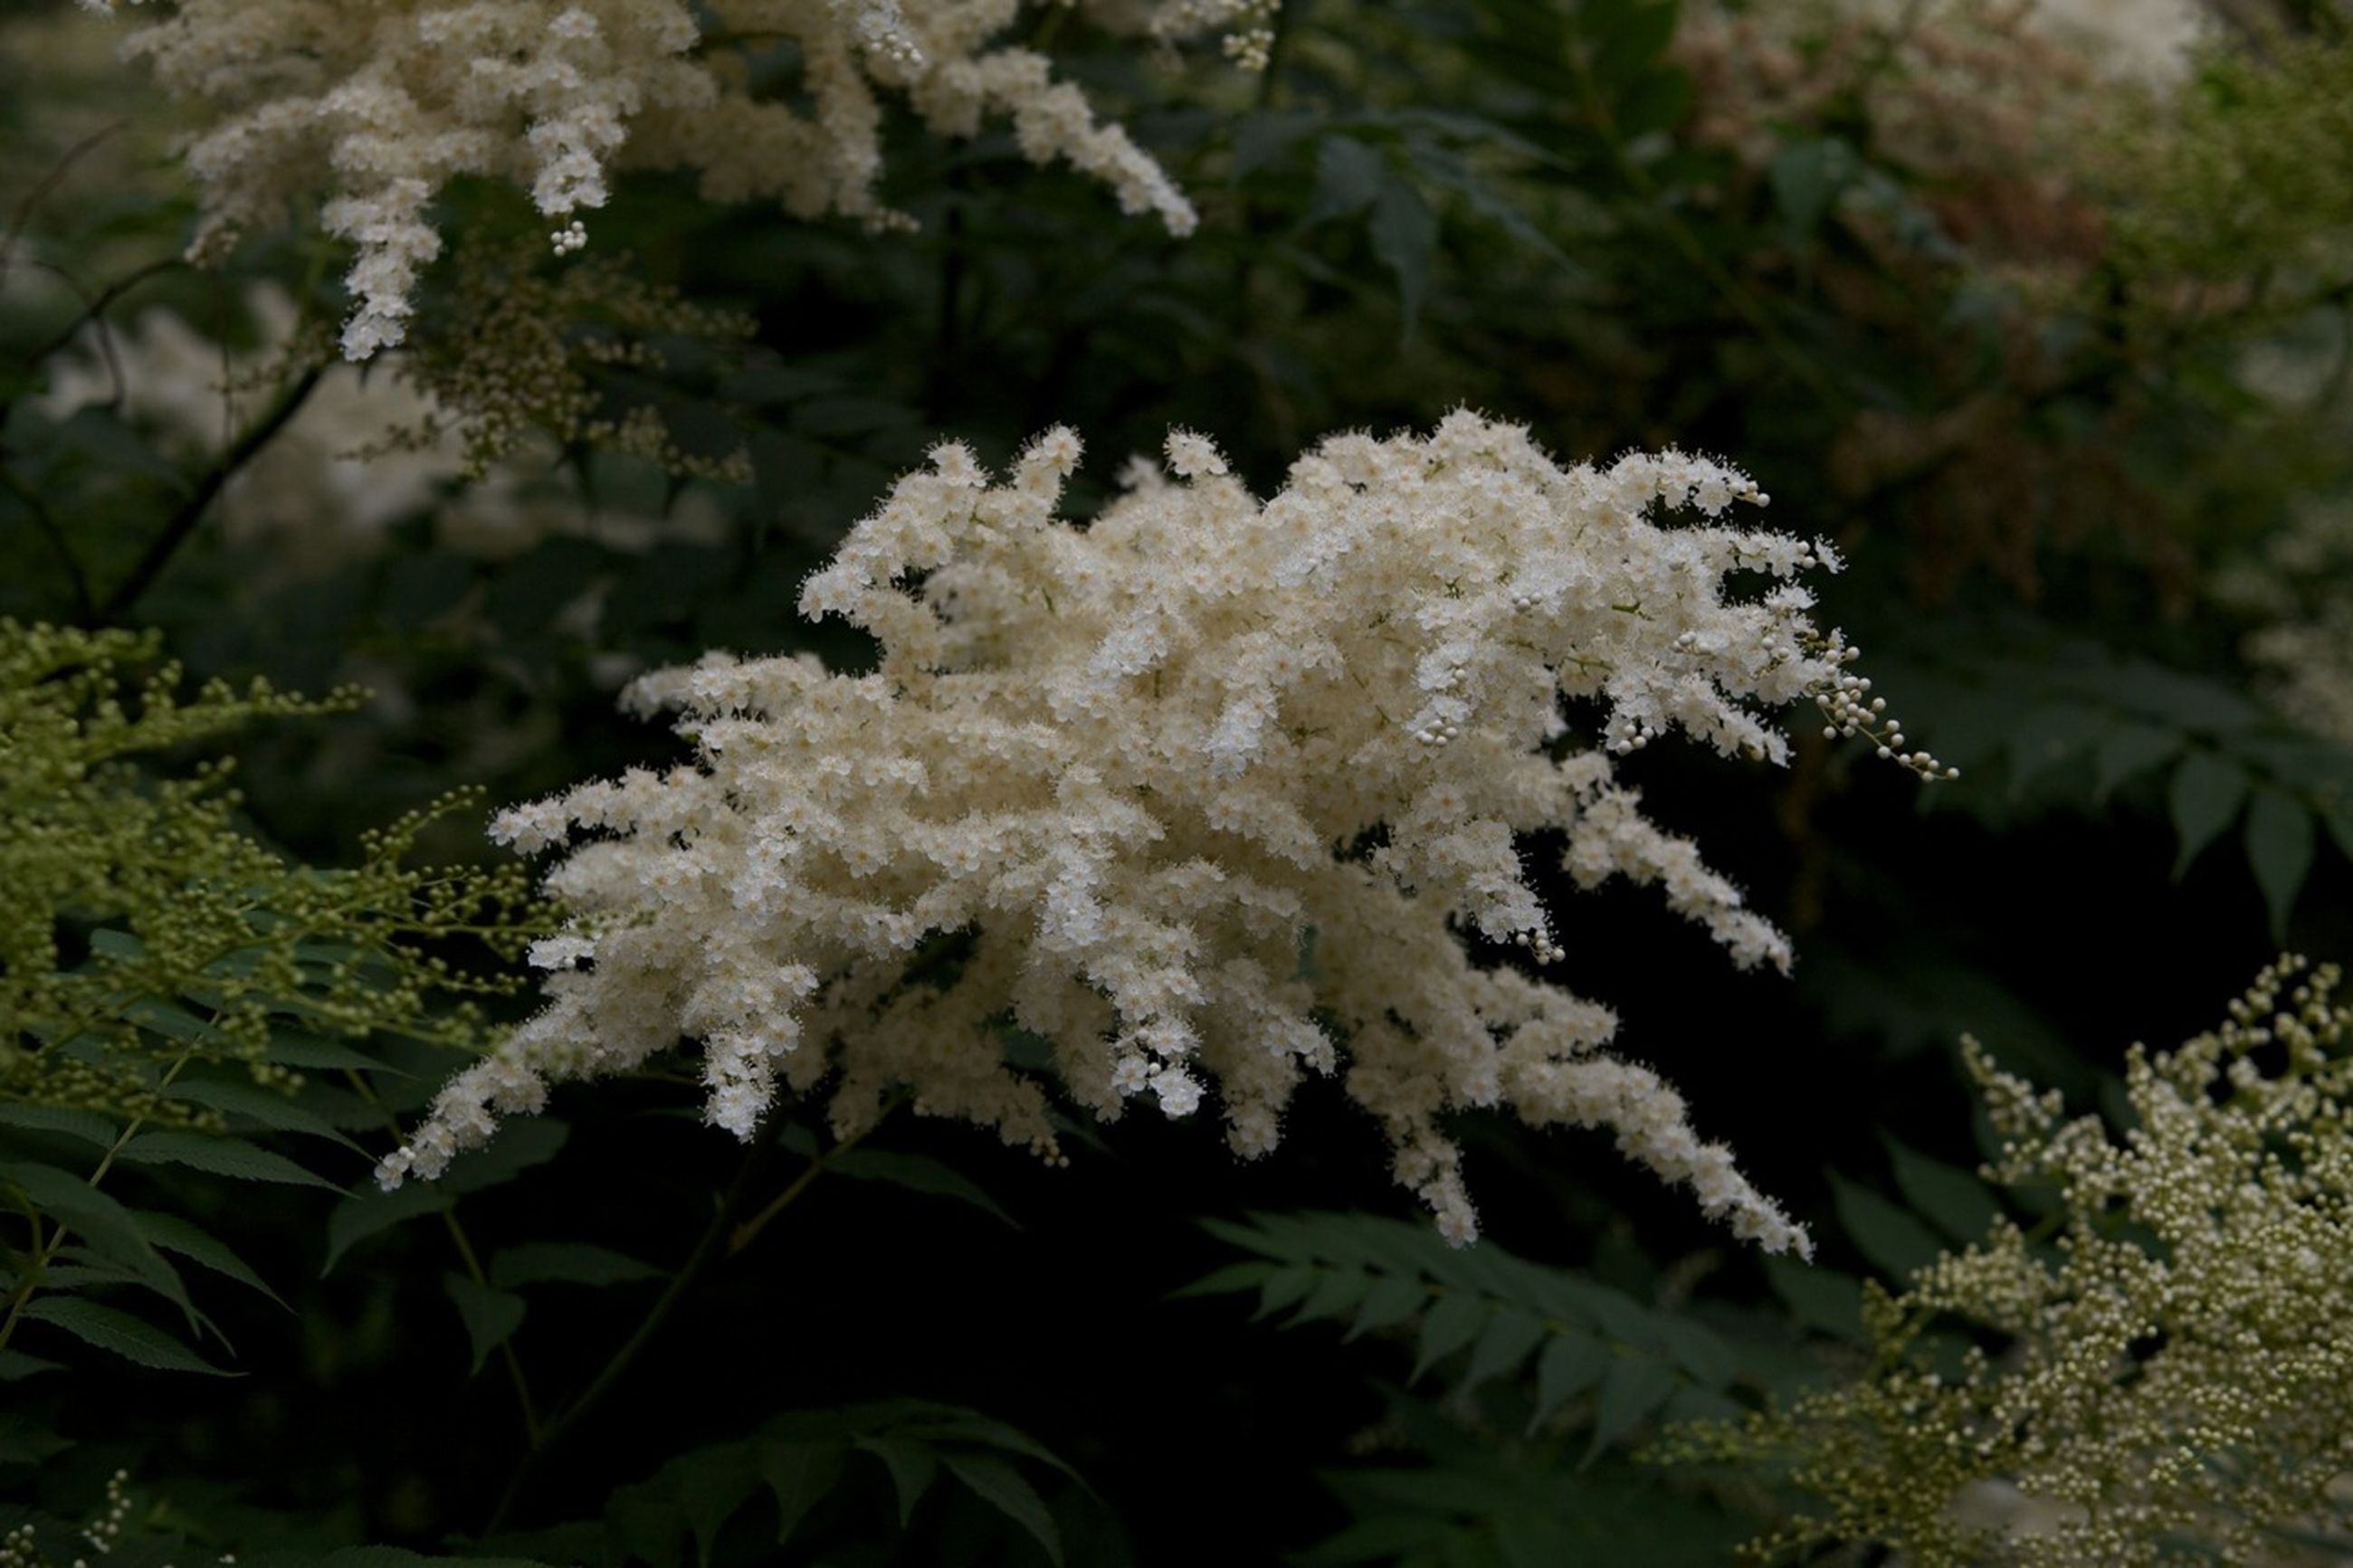 growth, flower, white color, beauty in nature, freshness, fragility, nature, tree, close-up, focus on foreground, plant, petal, branch, blooming, in bloom, blossom, white, outdoors, flower head, day